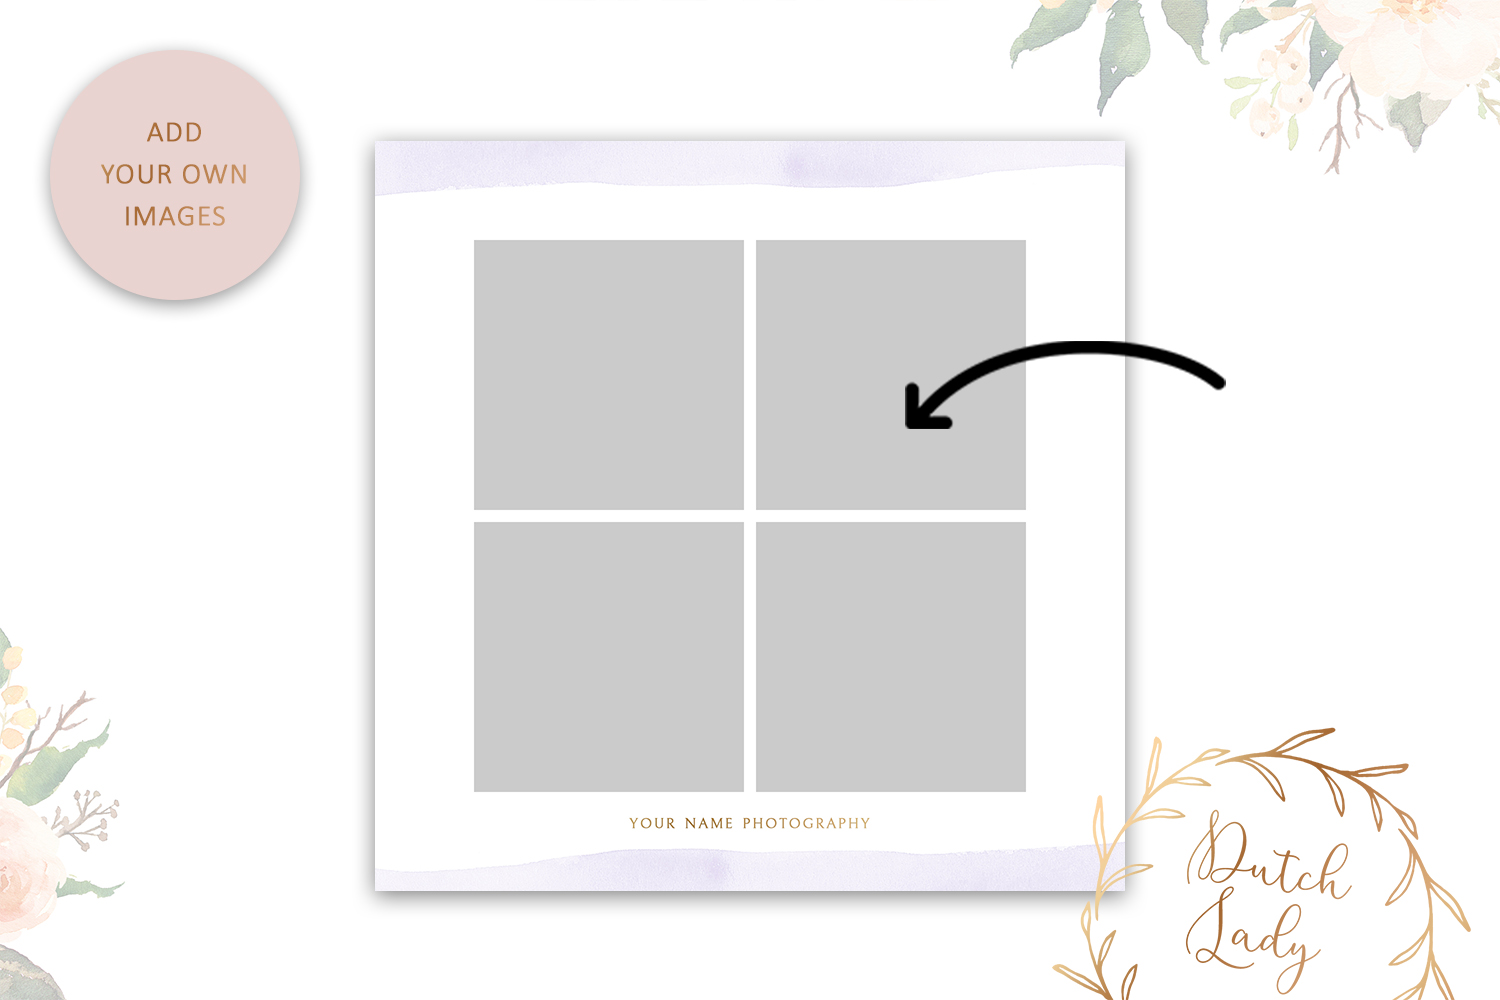 PSD Wedding Photo Session Advertising Card Template #4 example image 3